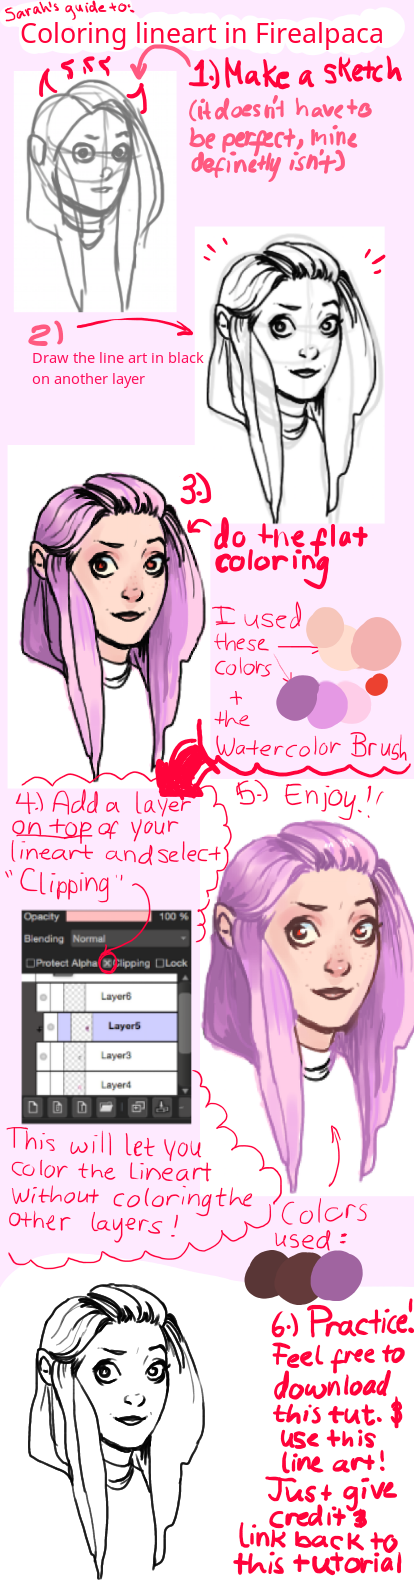 firealpaca lineart coloring tutorial base by sarahpenny10 - Paint Coloring